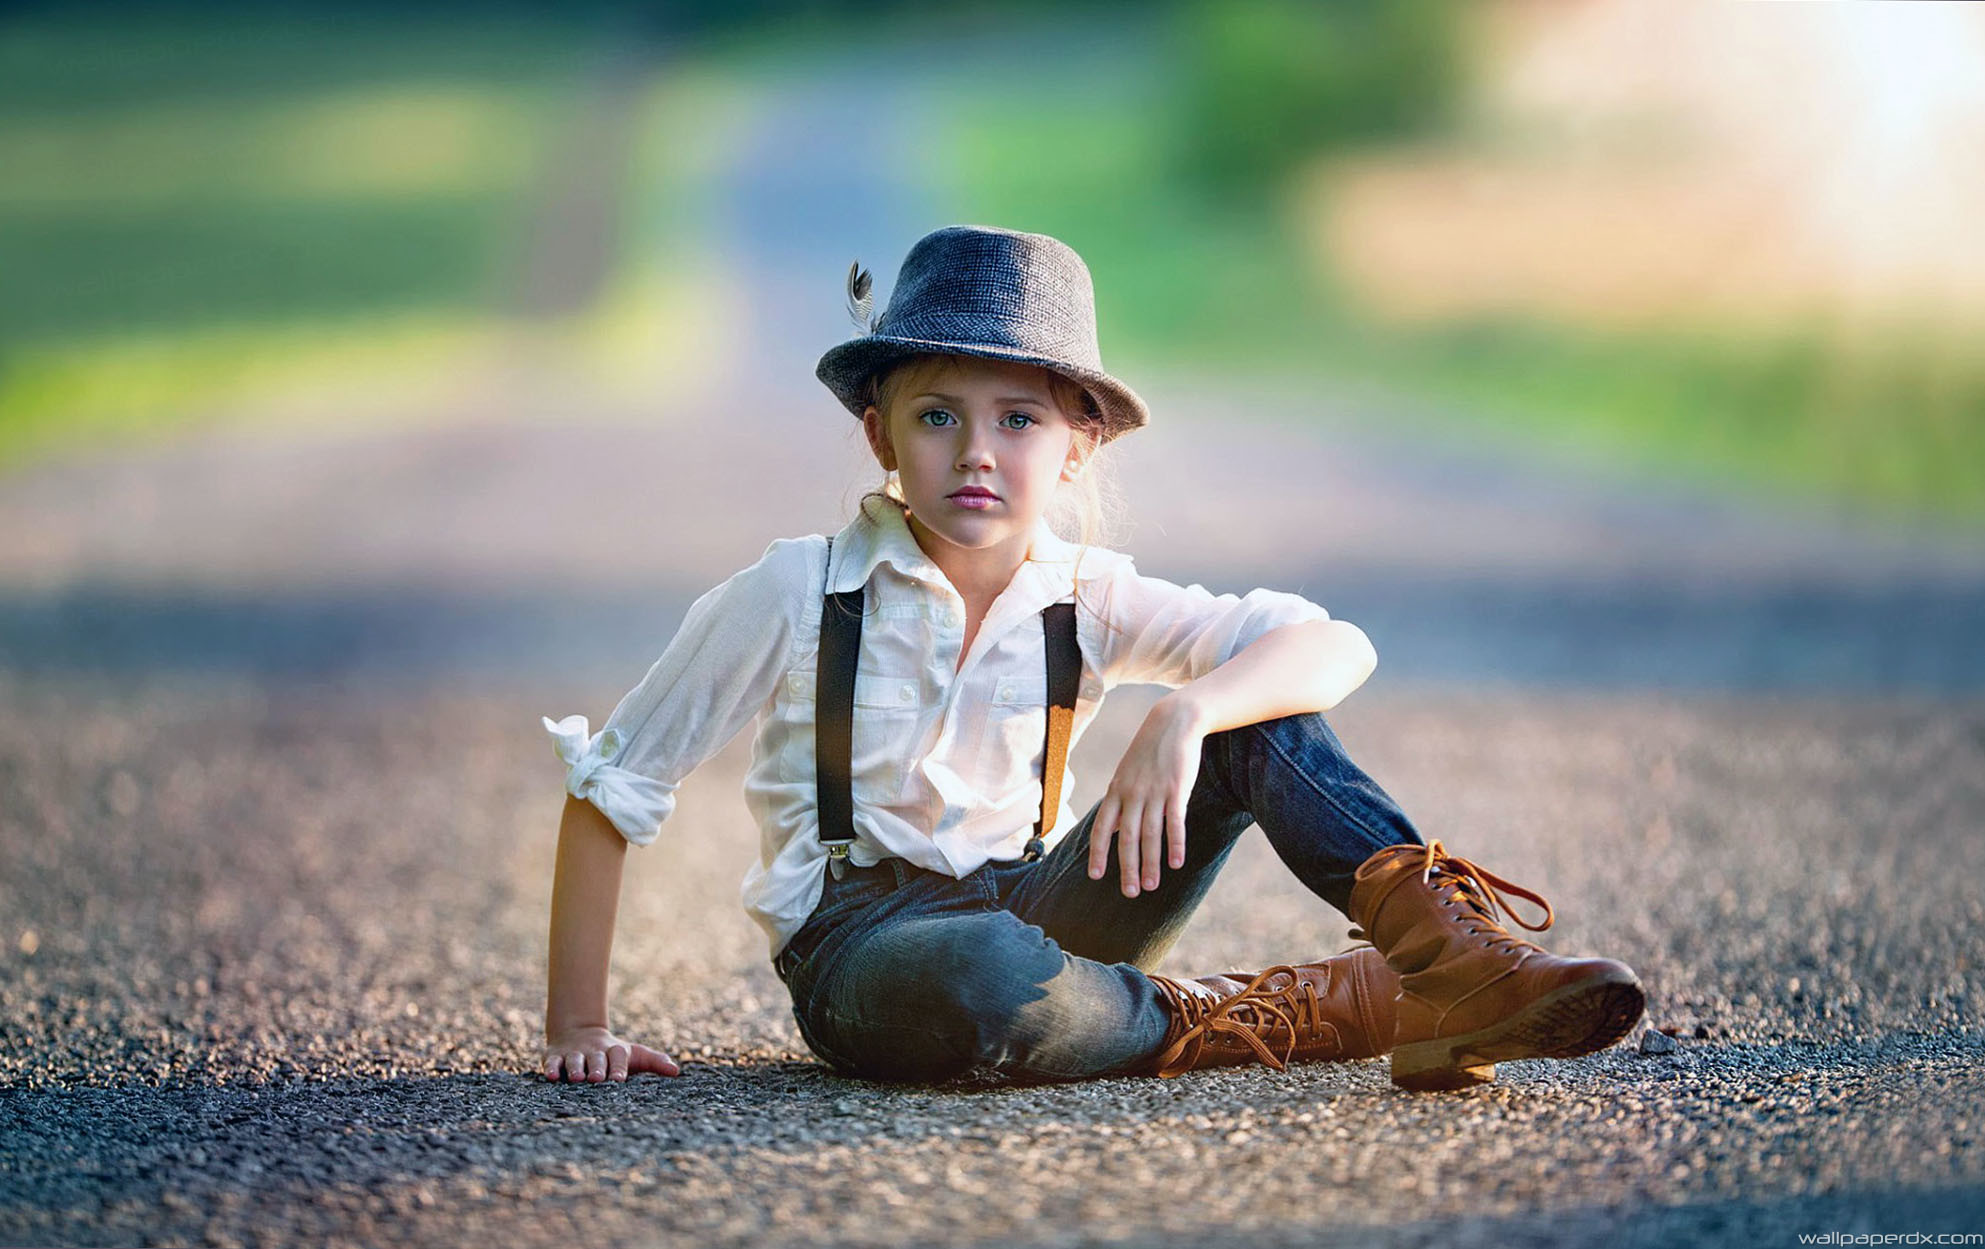 Boy Wallpaper Hd Full Size: Cute Boy Pictures Wallpaper (69+ Images